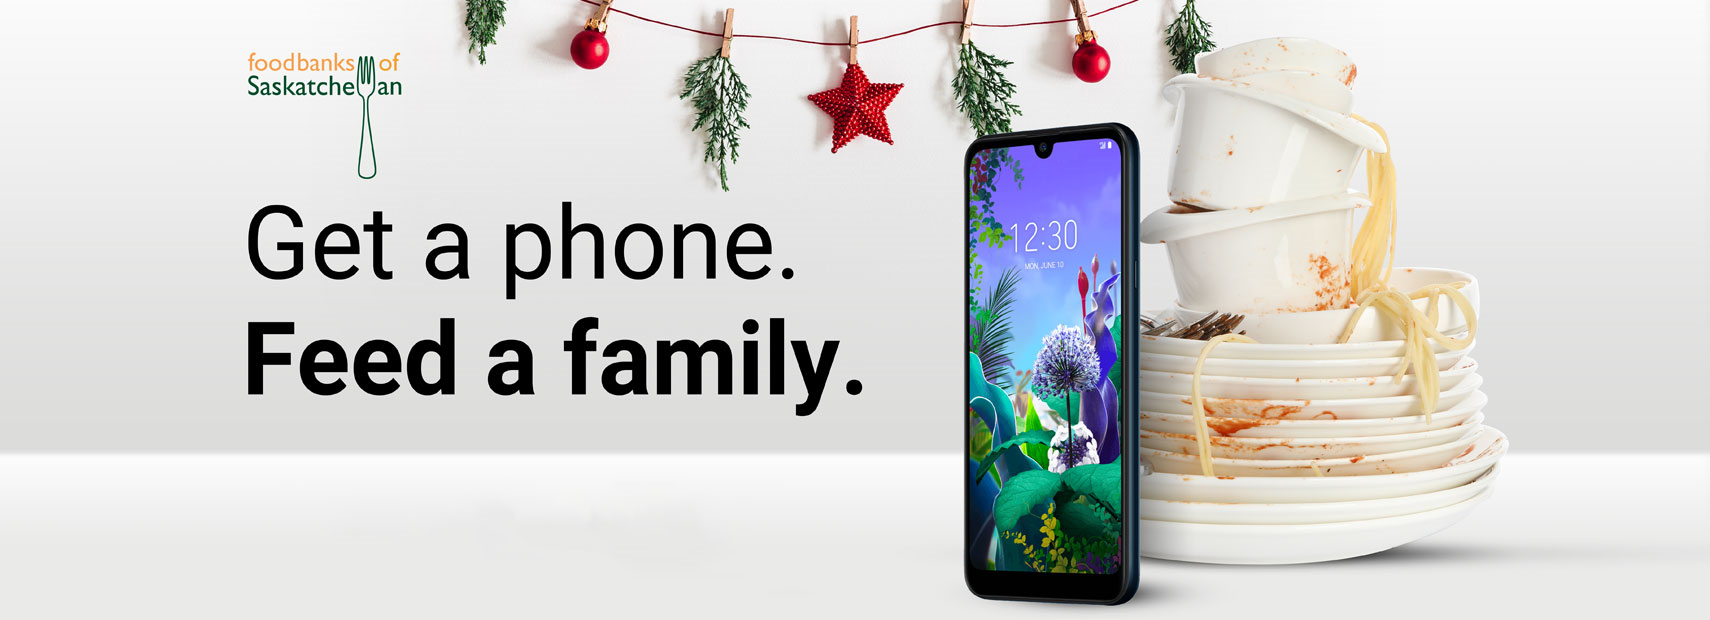 Get a phone, feed a family